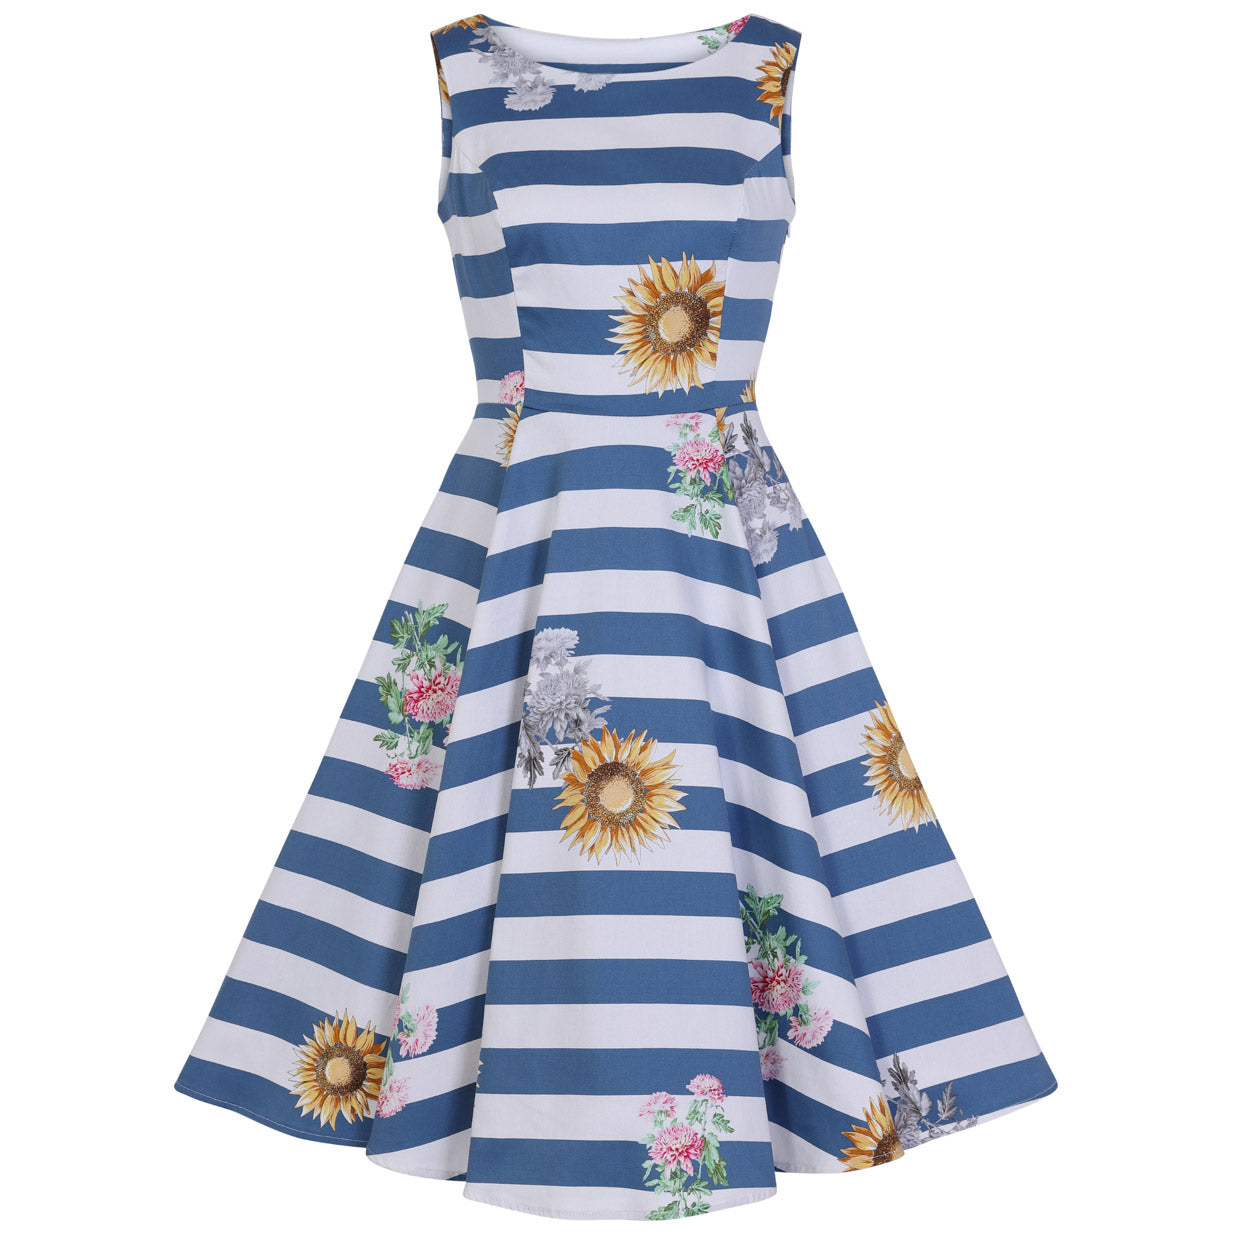 1ea6bbab4e2e7 Blue And White Striped Sunflower Audrey 50s Summer Swing Dress - Pretty  Kitty Fashion